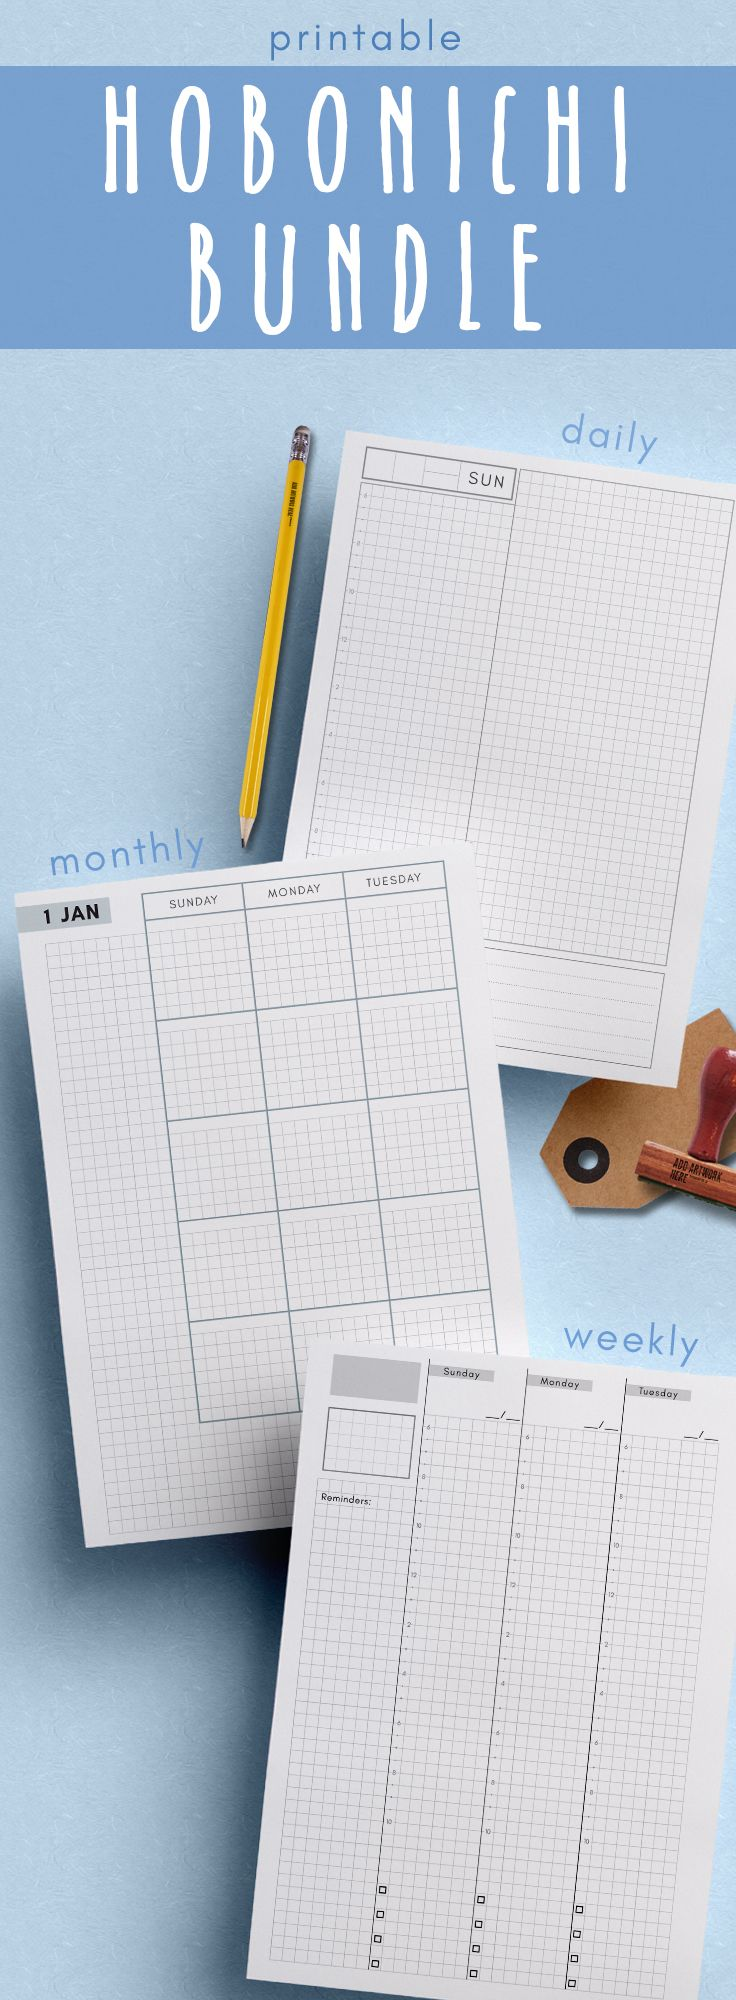 Printable Hobonichi Techo Cousin - style planner. Monthly, weekly, and daily grid planners in A5 #hobonichi #planner #printable